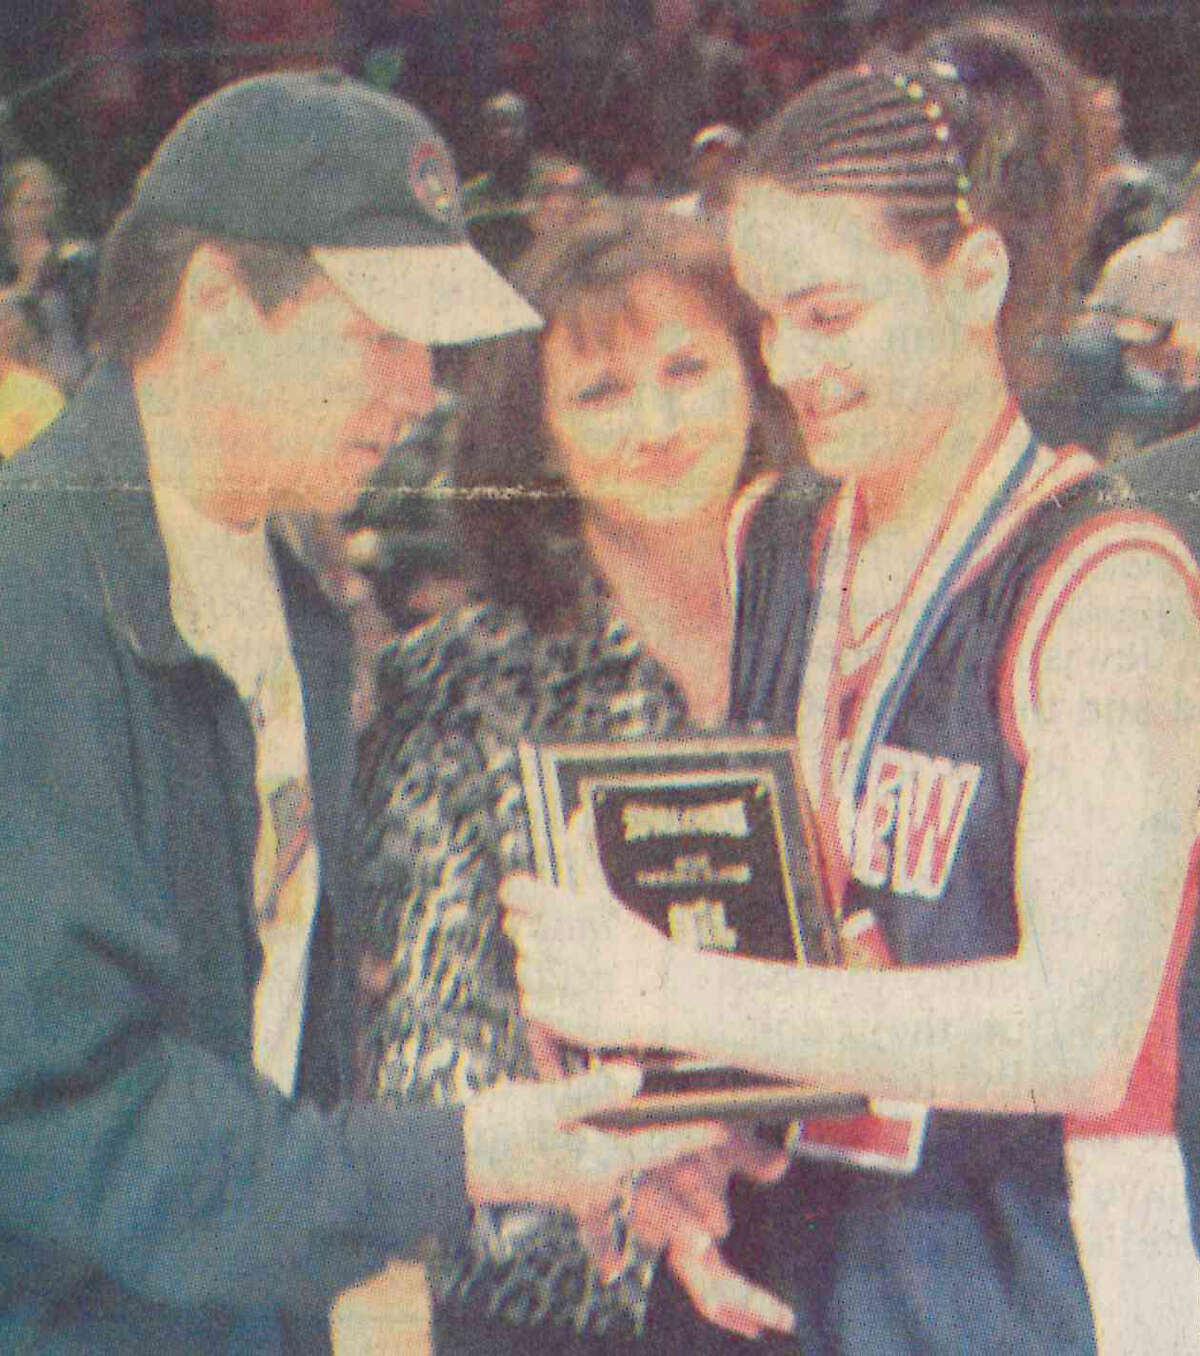 Alesha Robertson receives the MVP trophy after the Lady Dogs' 2002 state championship victory